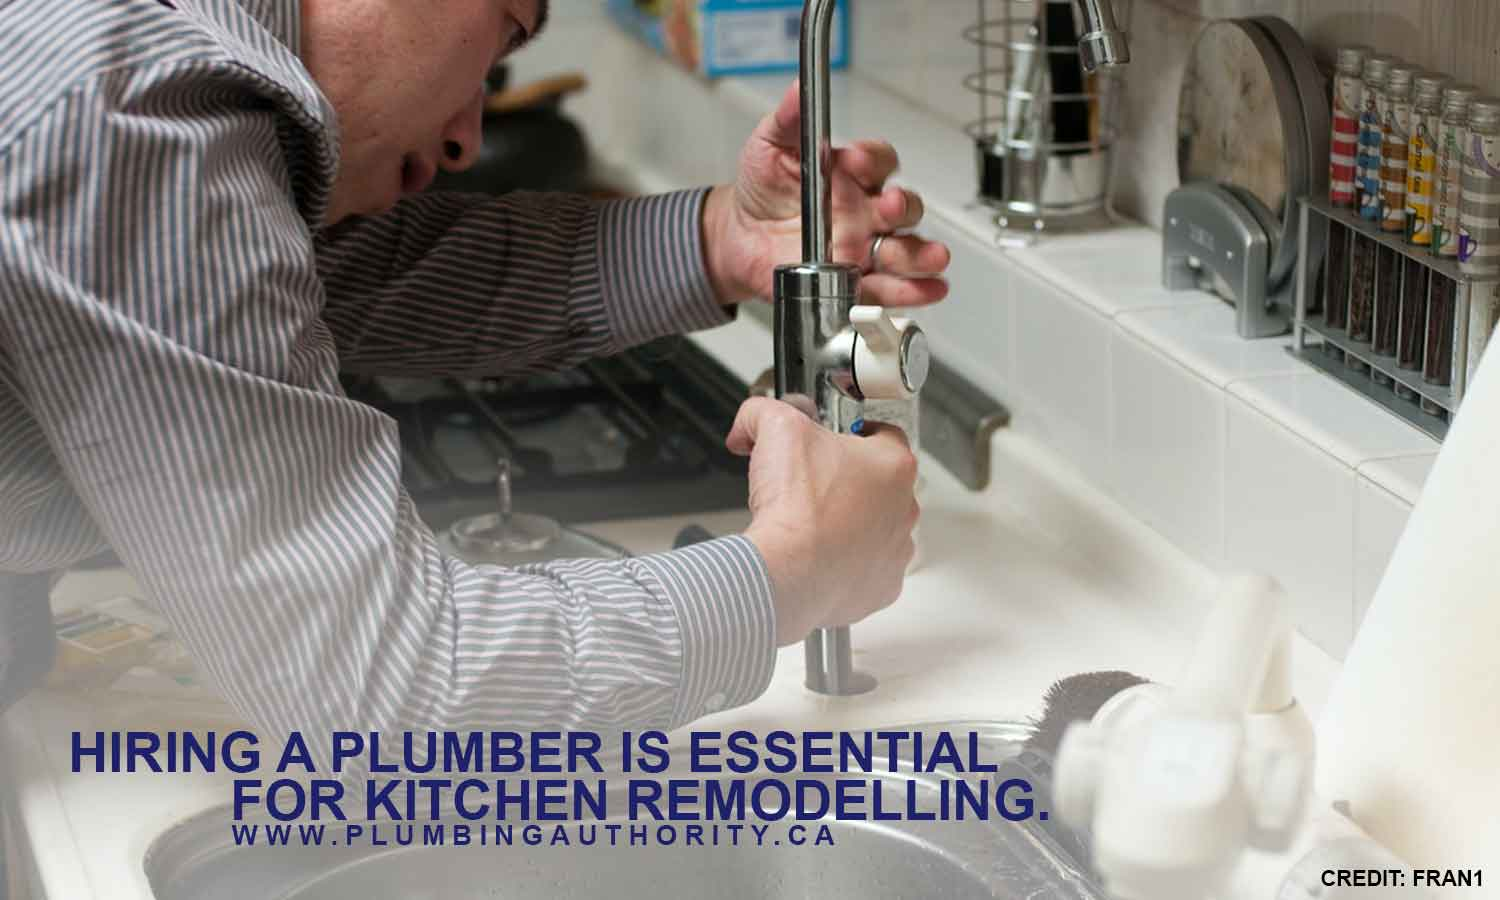 Hiring a plumber is essential for kitchen remodelling.